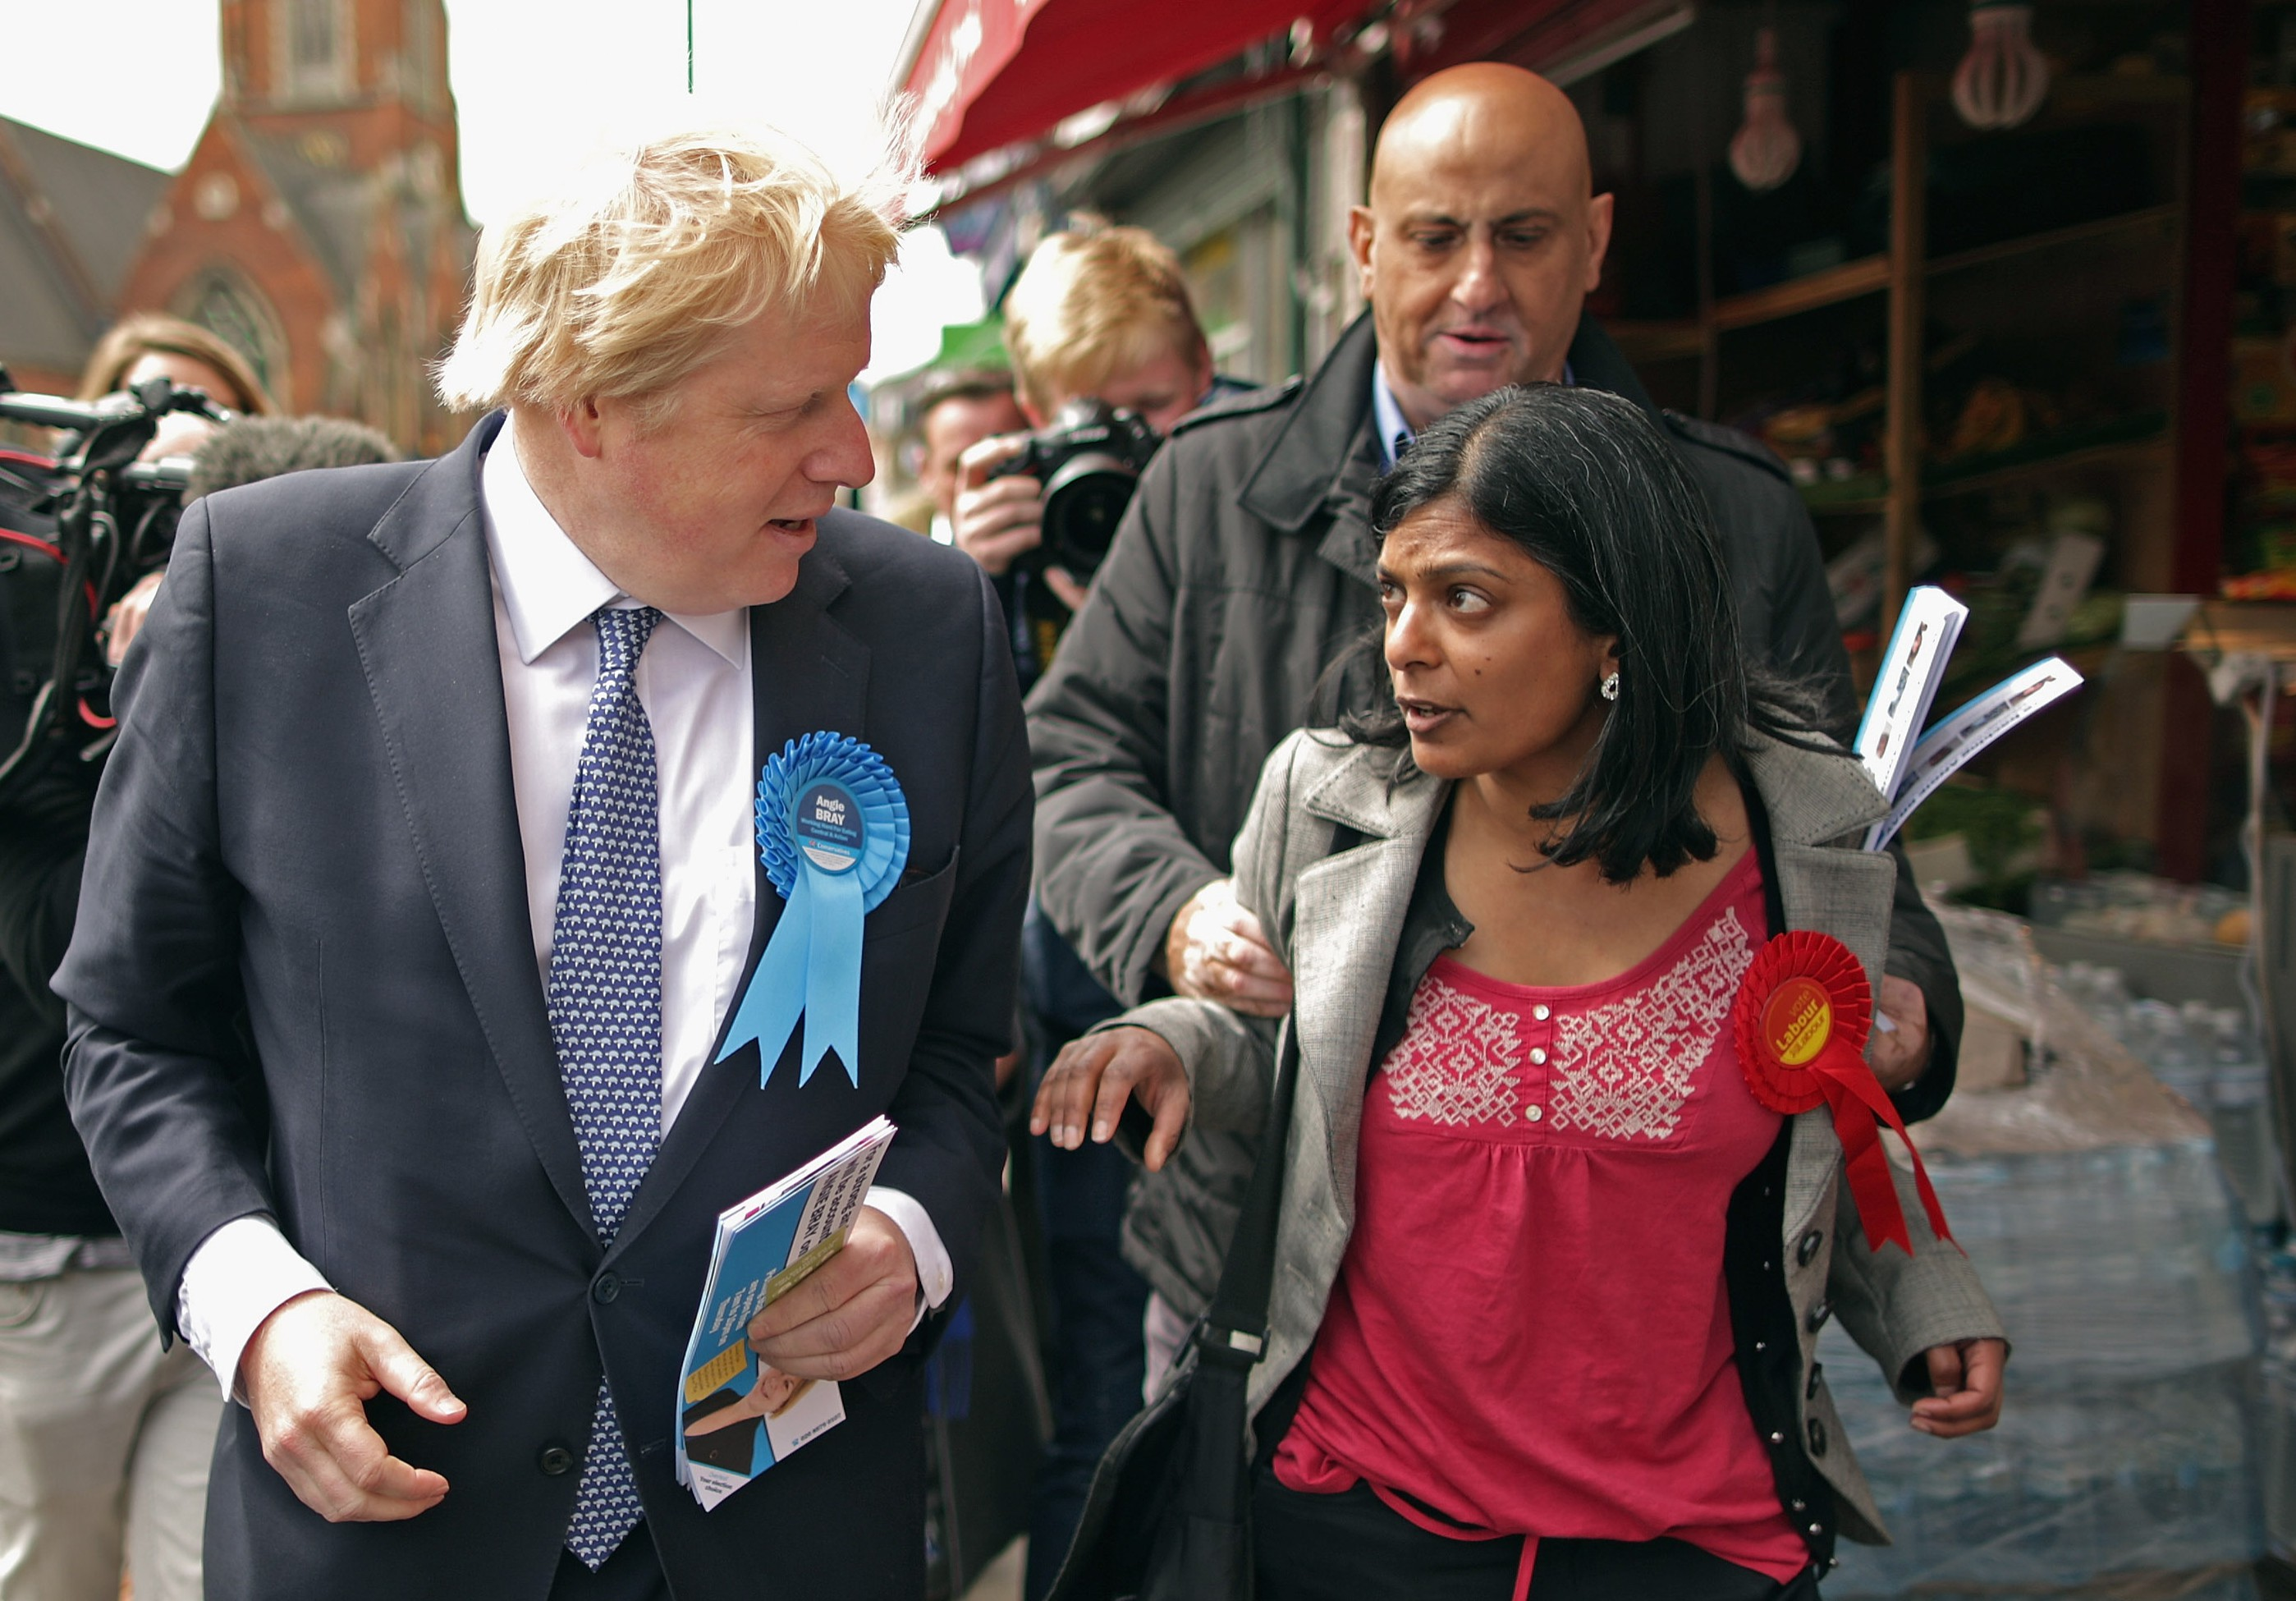 Labour candidate 'attacked by Tory activist' as she tries to talk to Boris Johnson